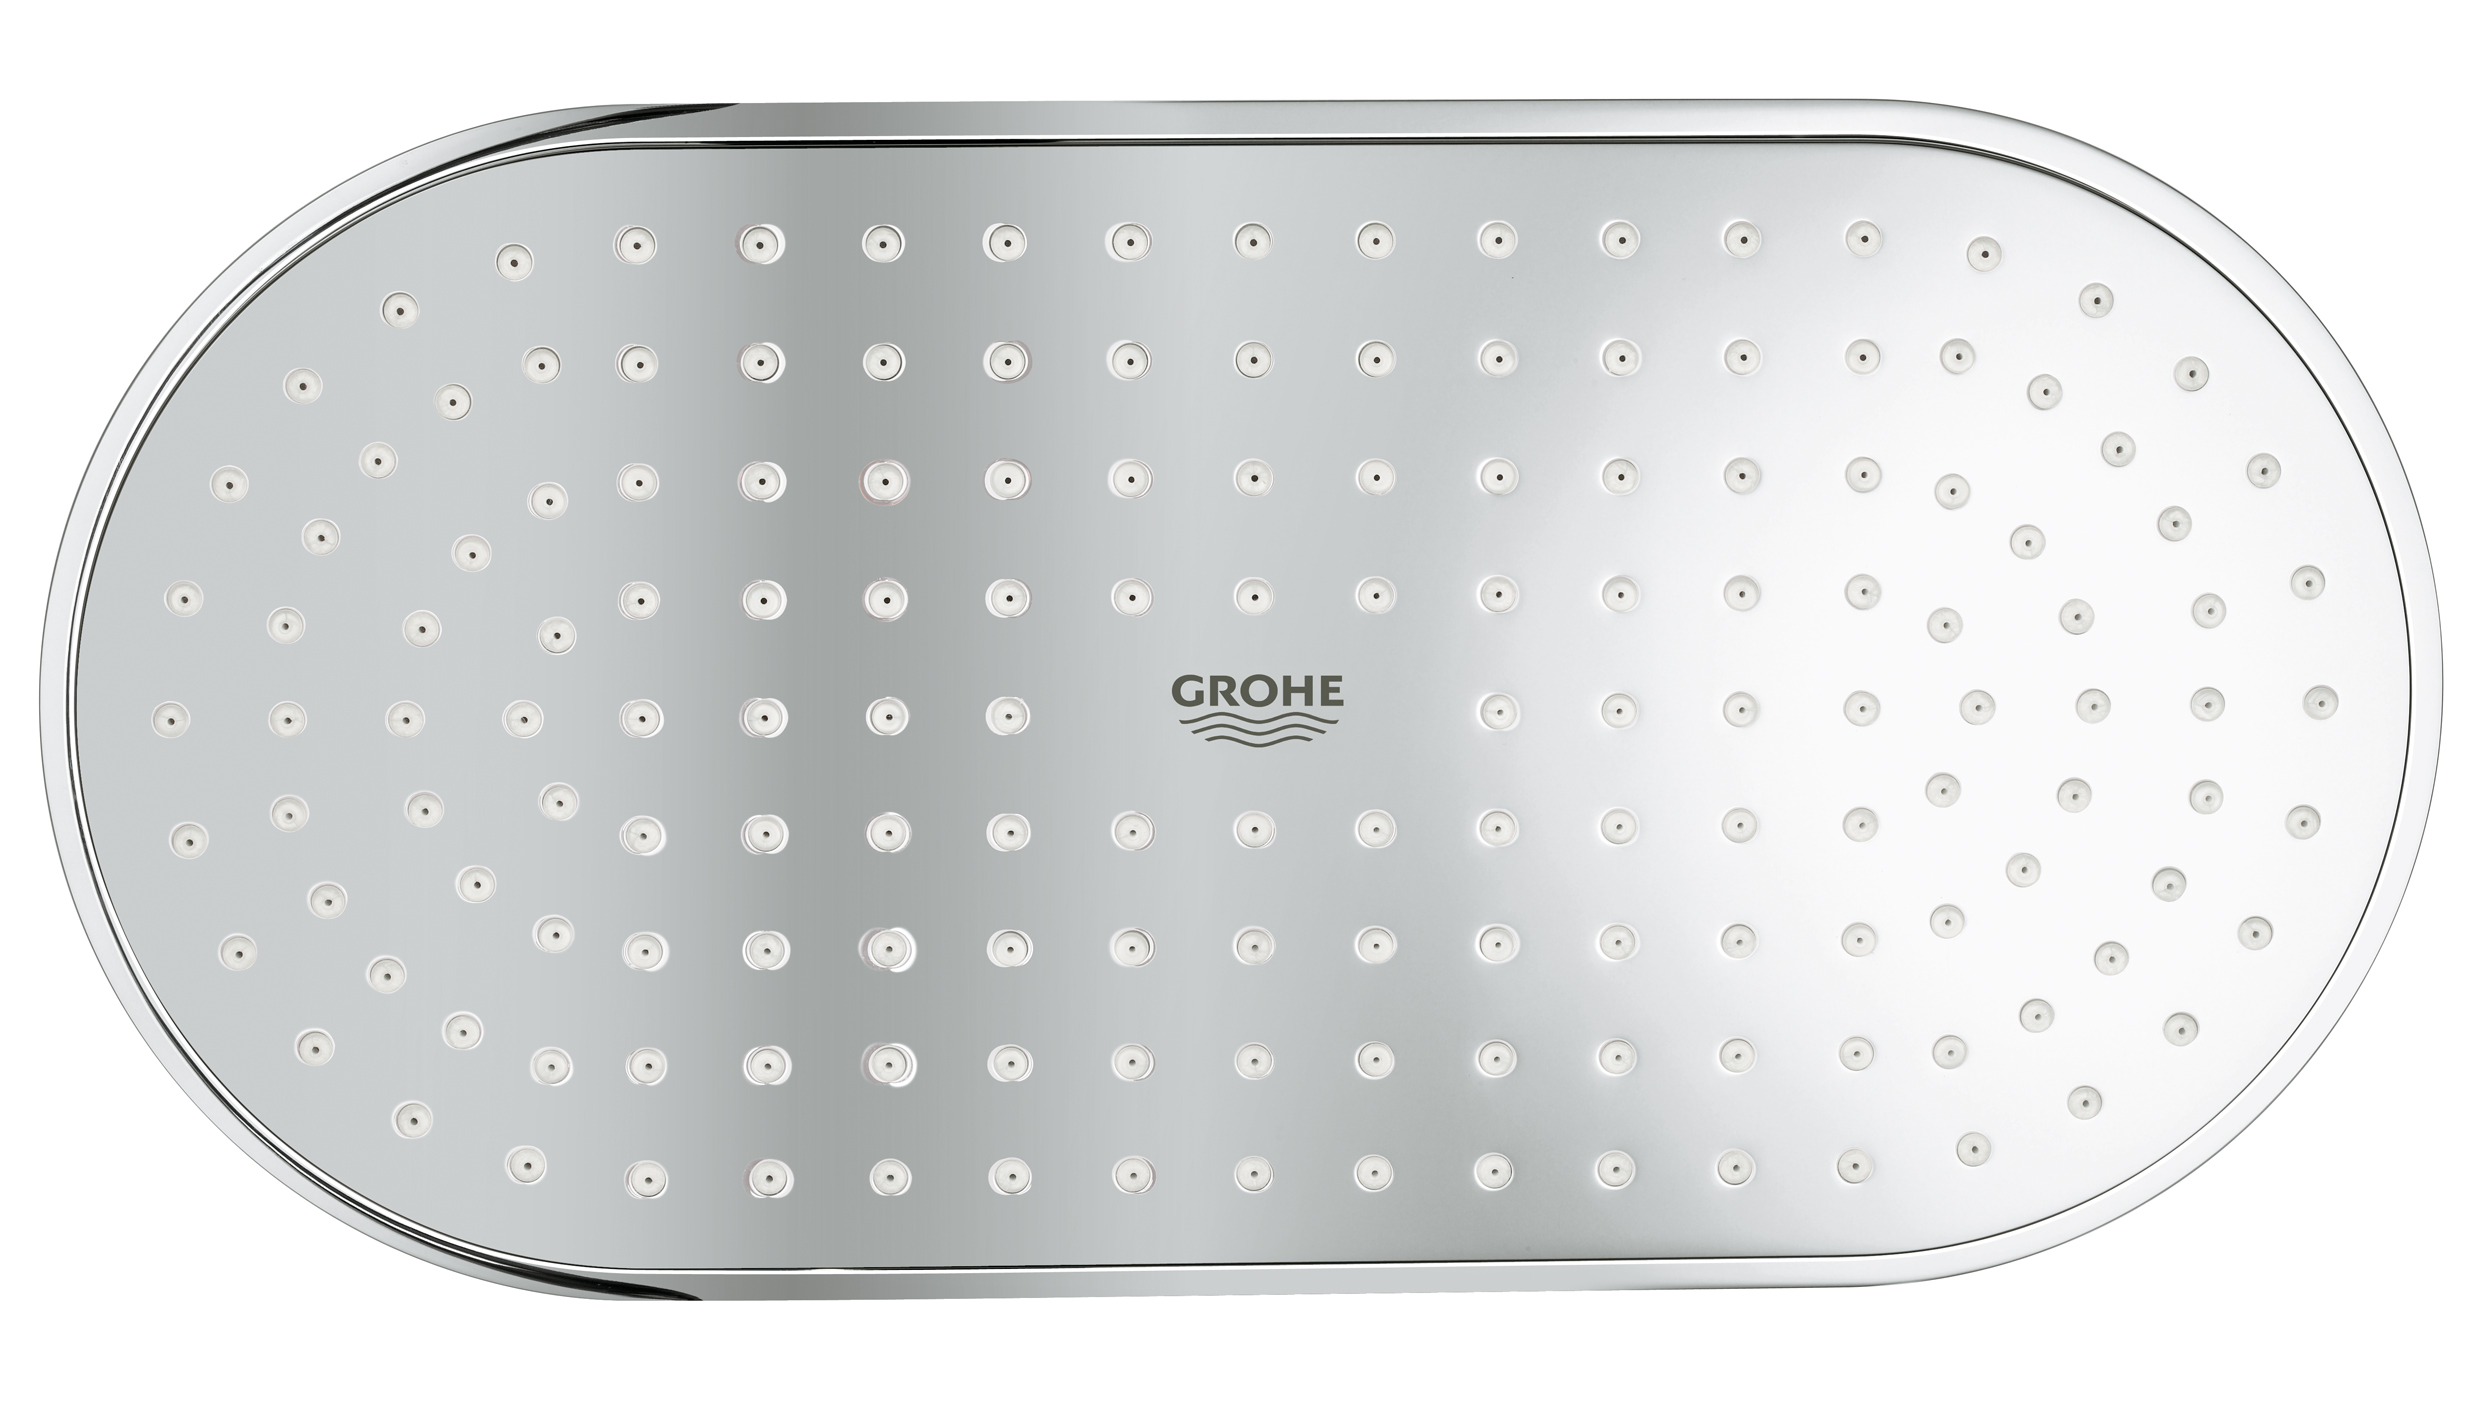 Верхний душ GROHE Rainshower Veris, диаметр 300 мм, хром (27471000) фото